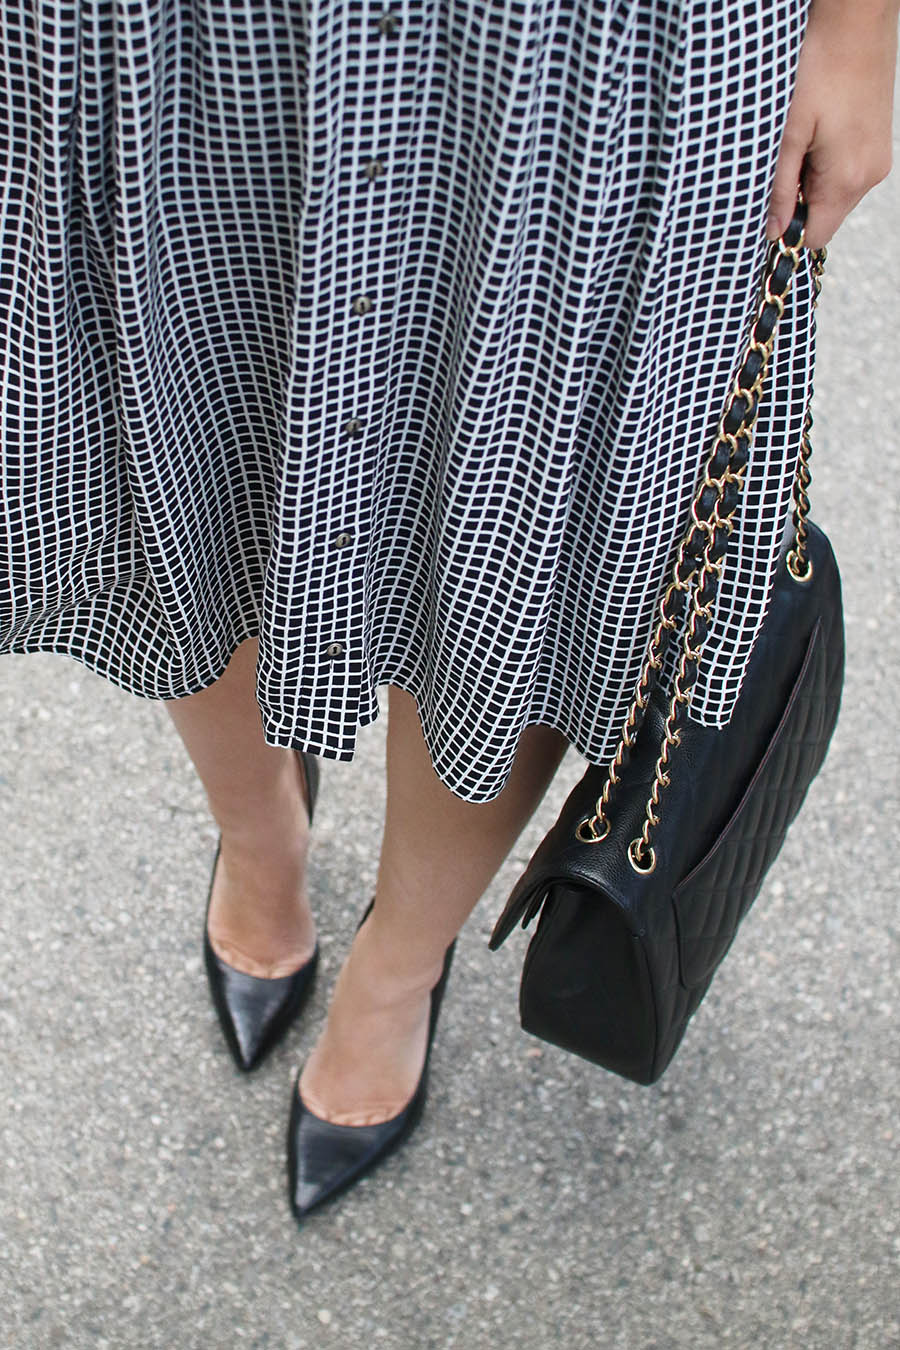 black-pumps-handbag-and-midi-skirt